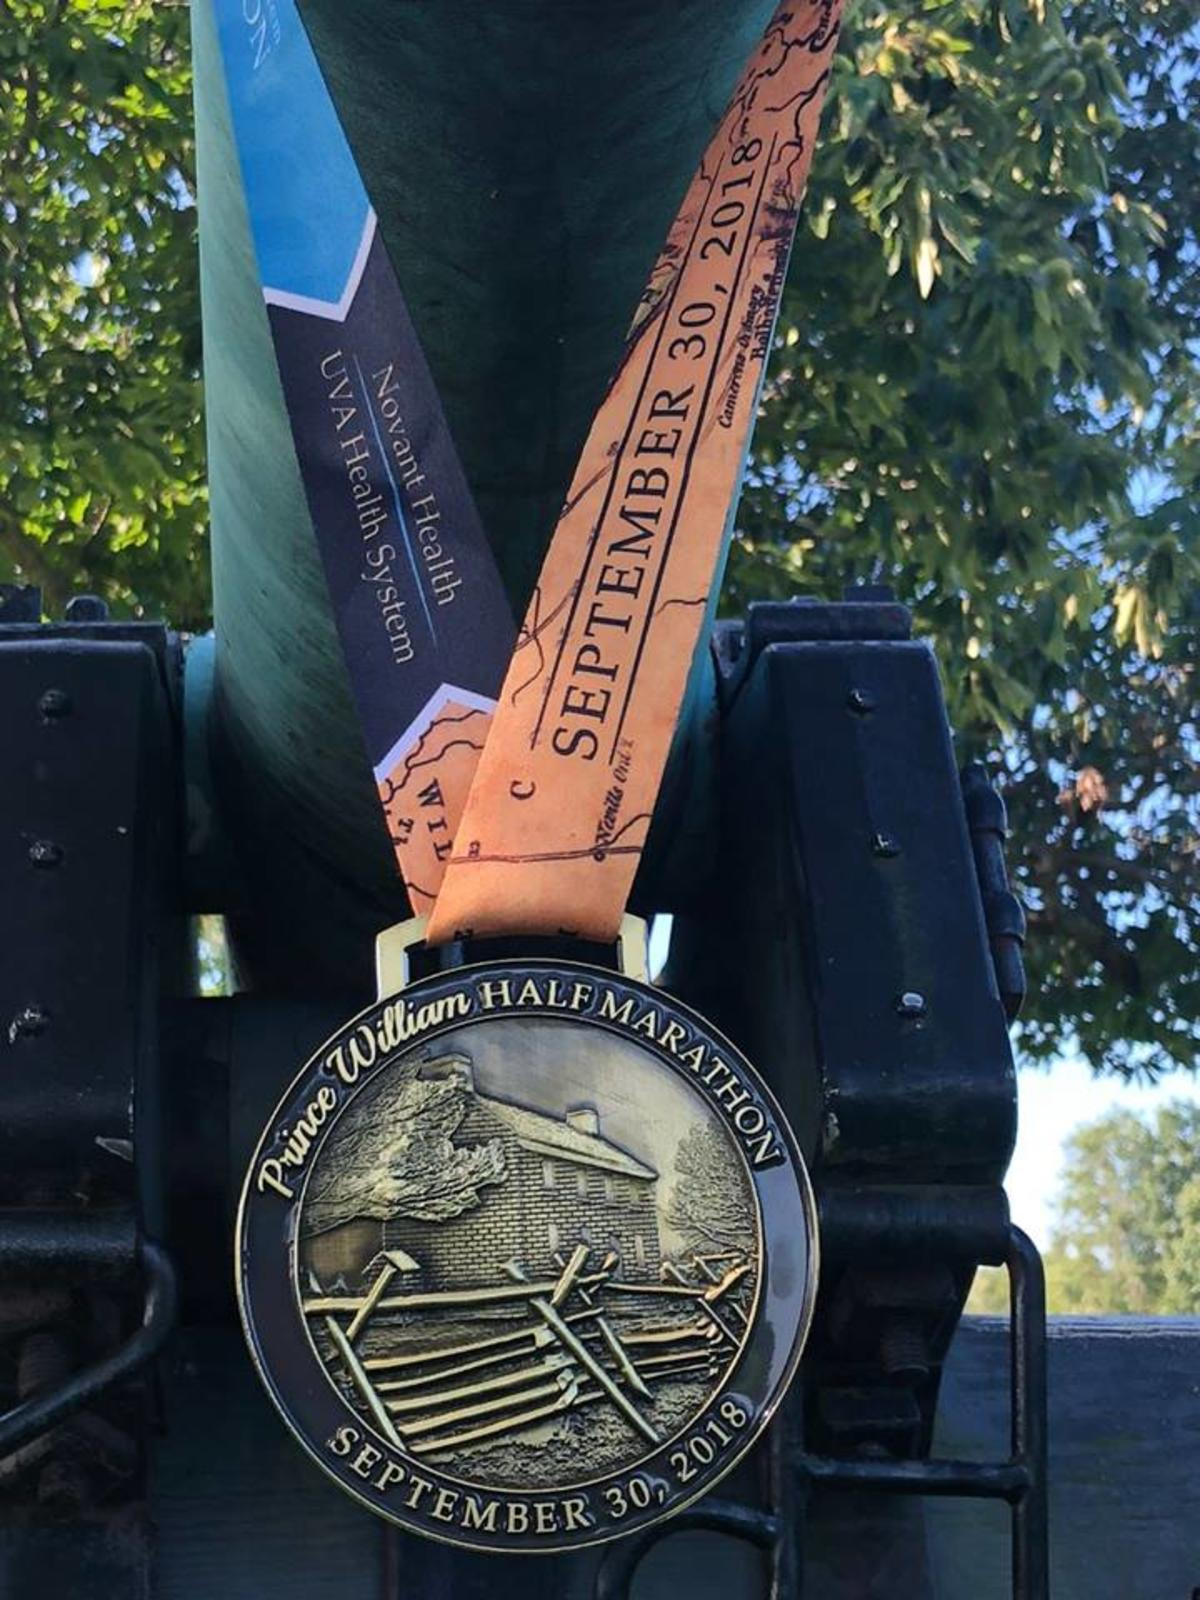 Half Marathon medal hanging from a cannon